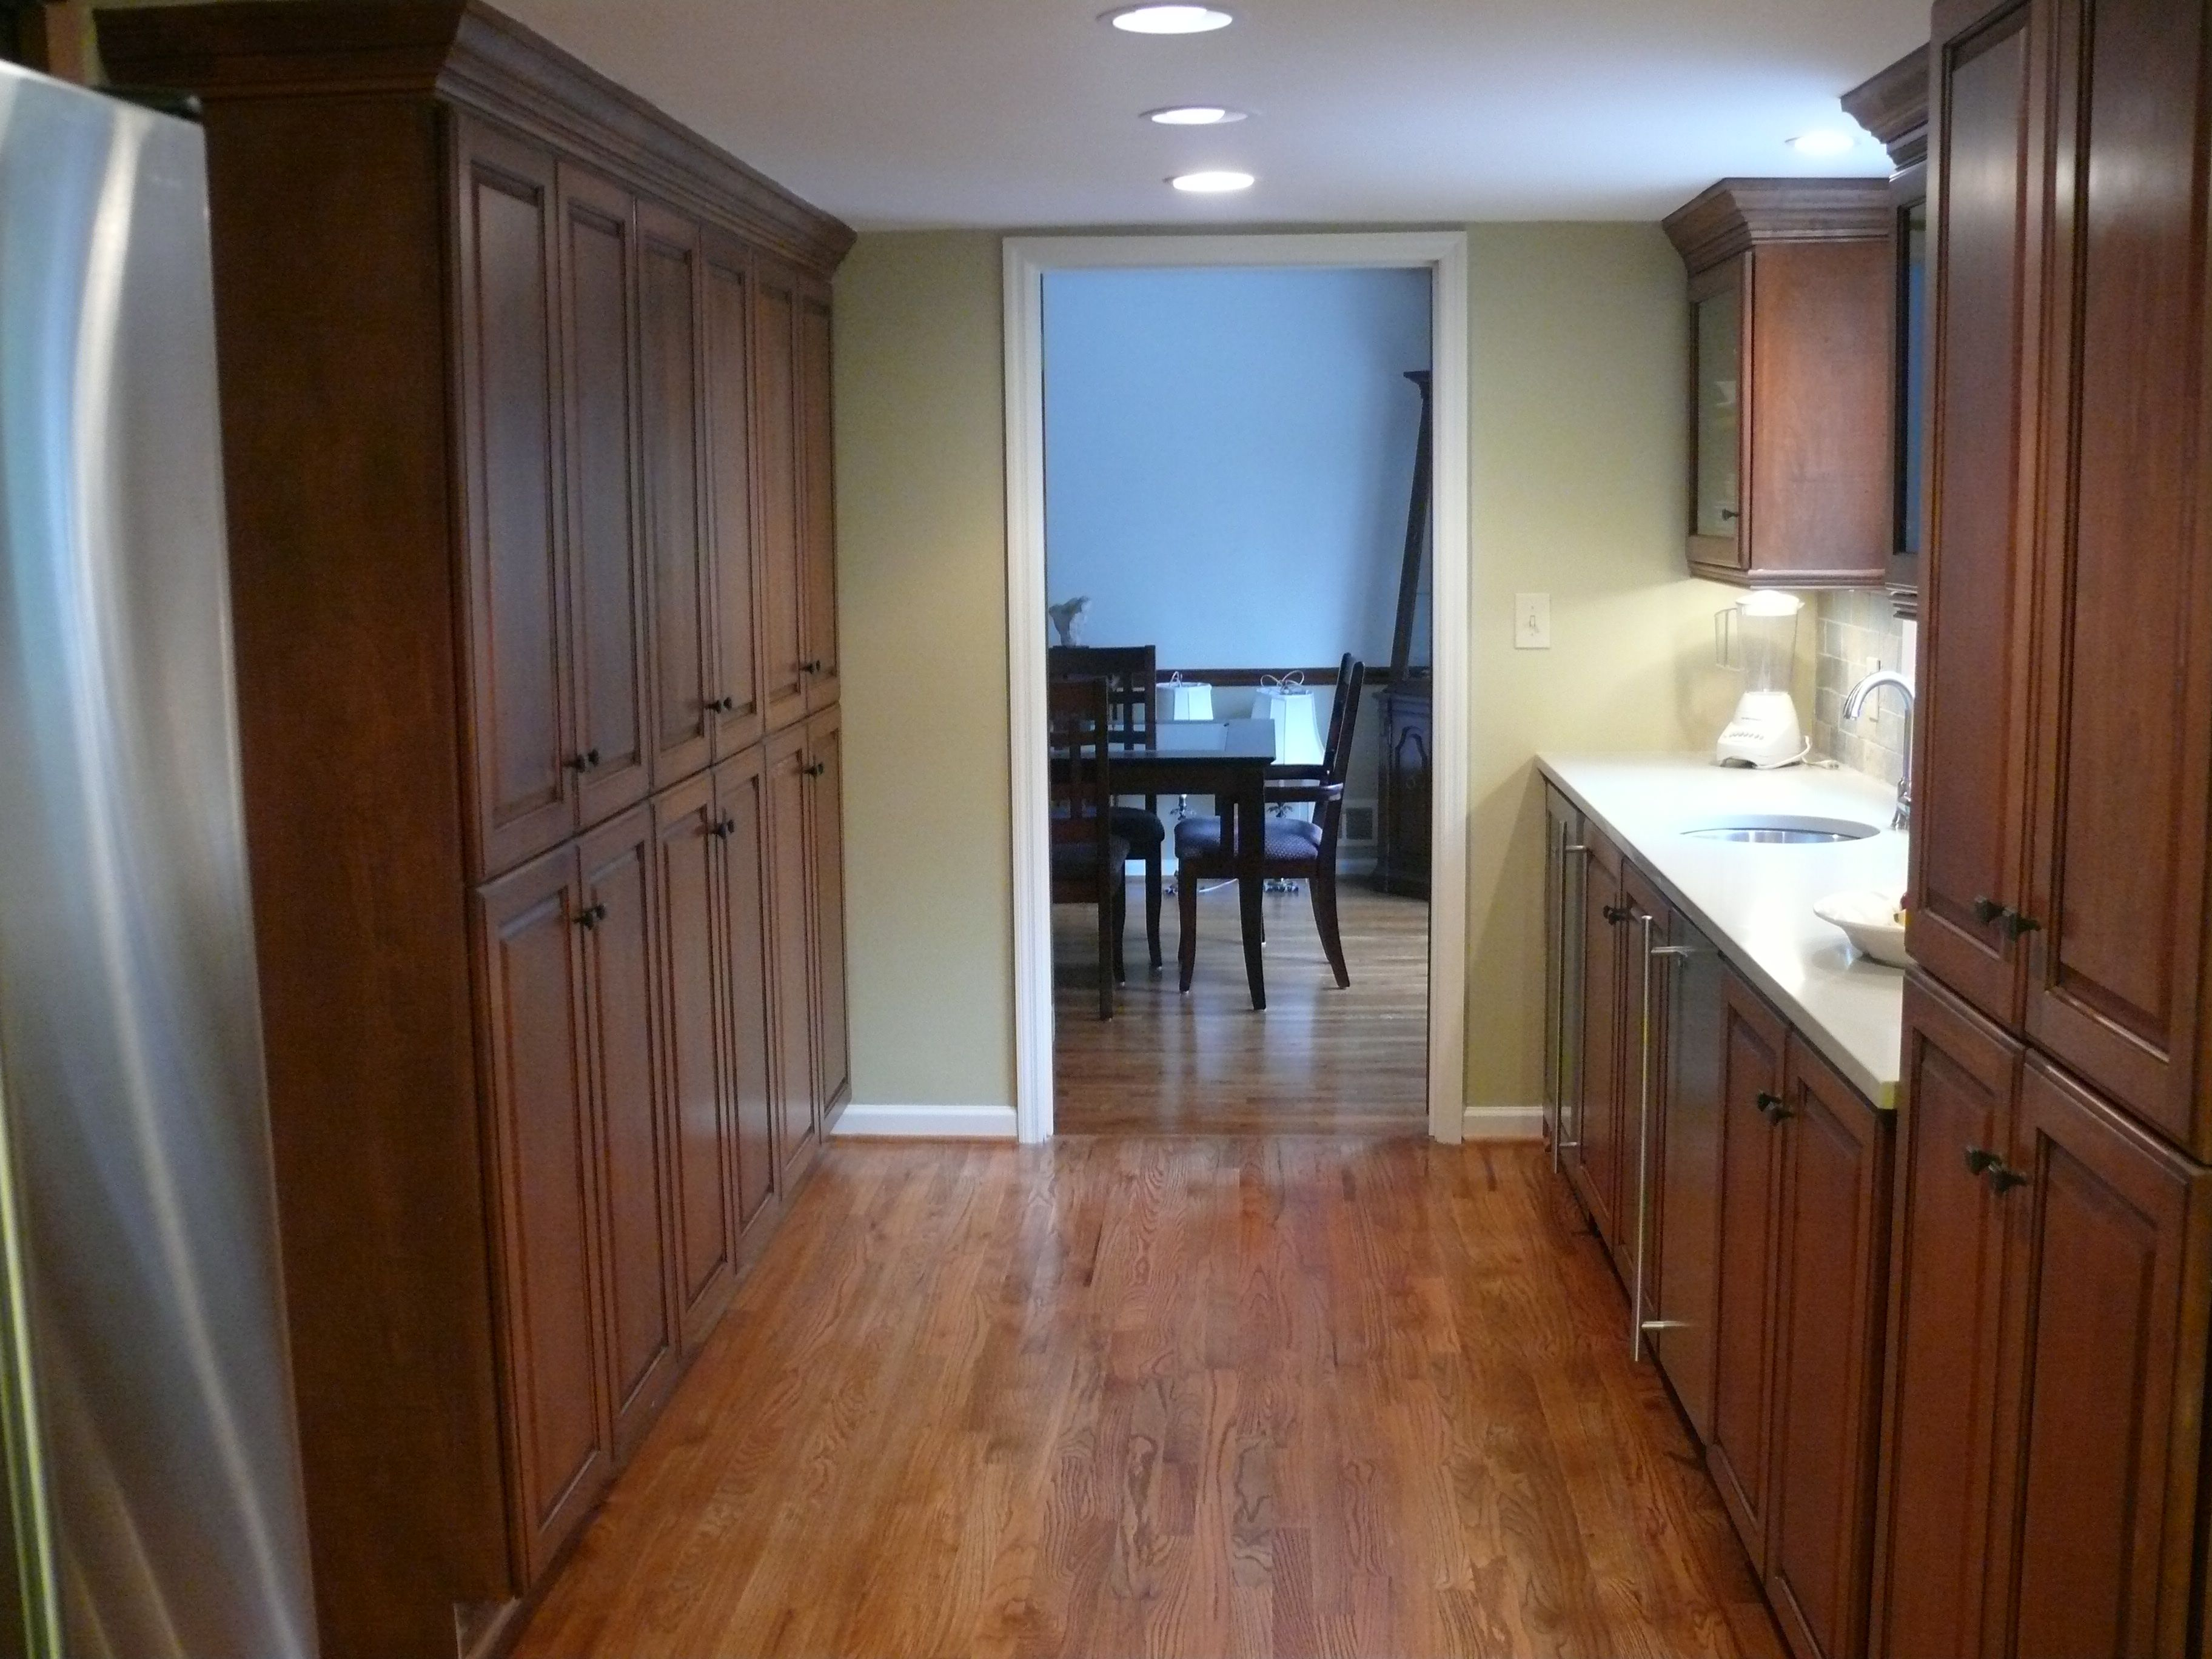 Pantry Cabinet: Floor To Ceiling Pantry Cabinets with ...